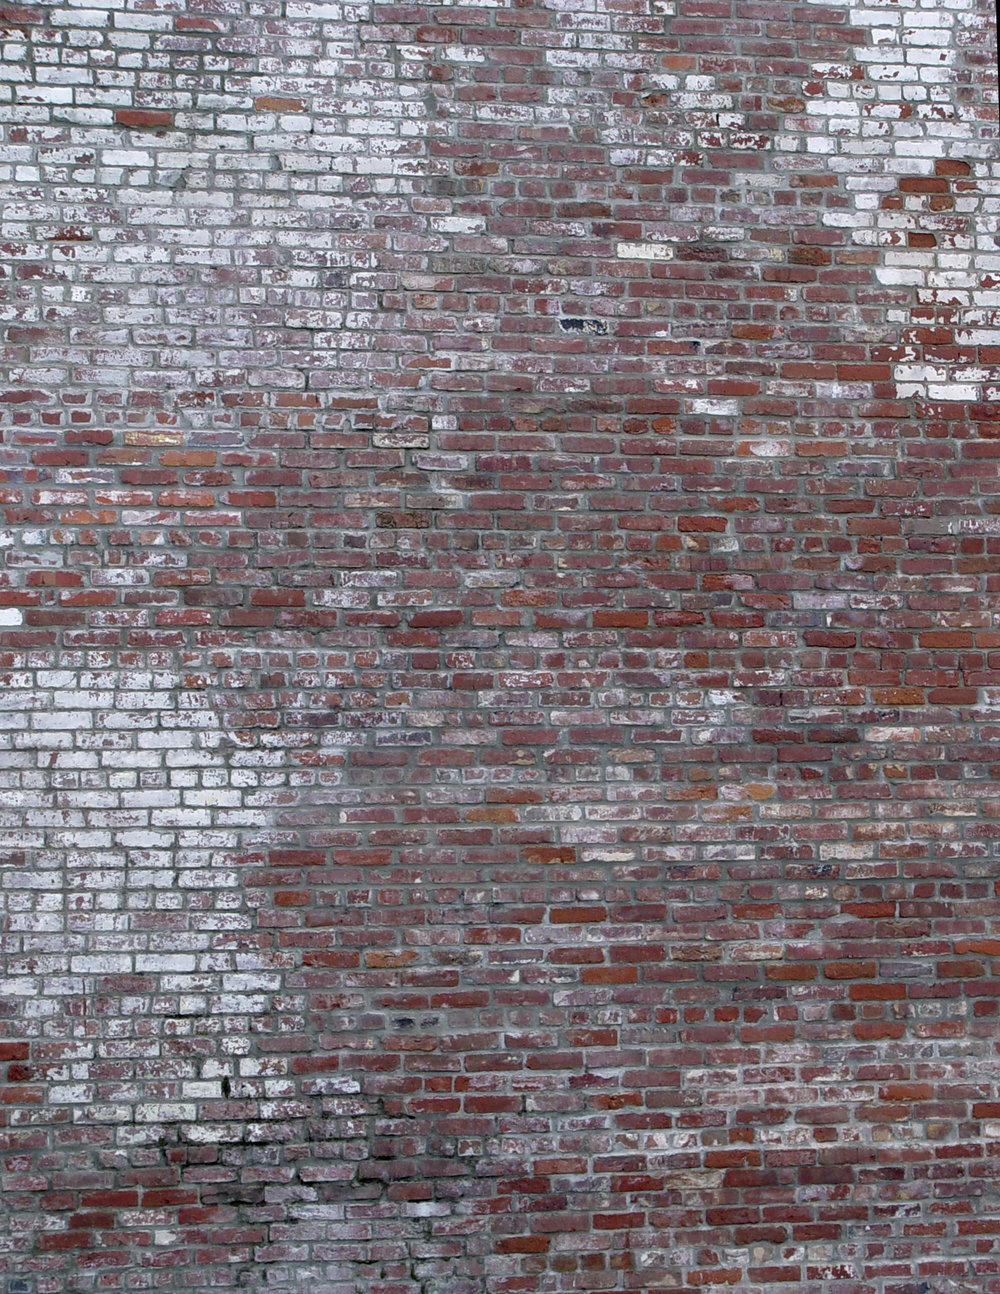 PaintedWhiteRedBrickWall.jpg